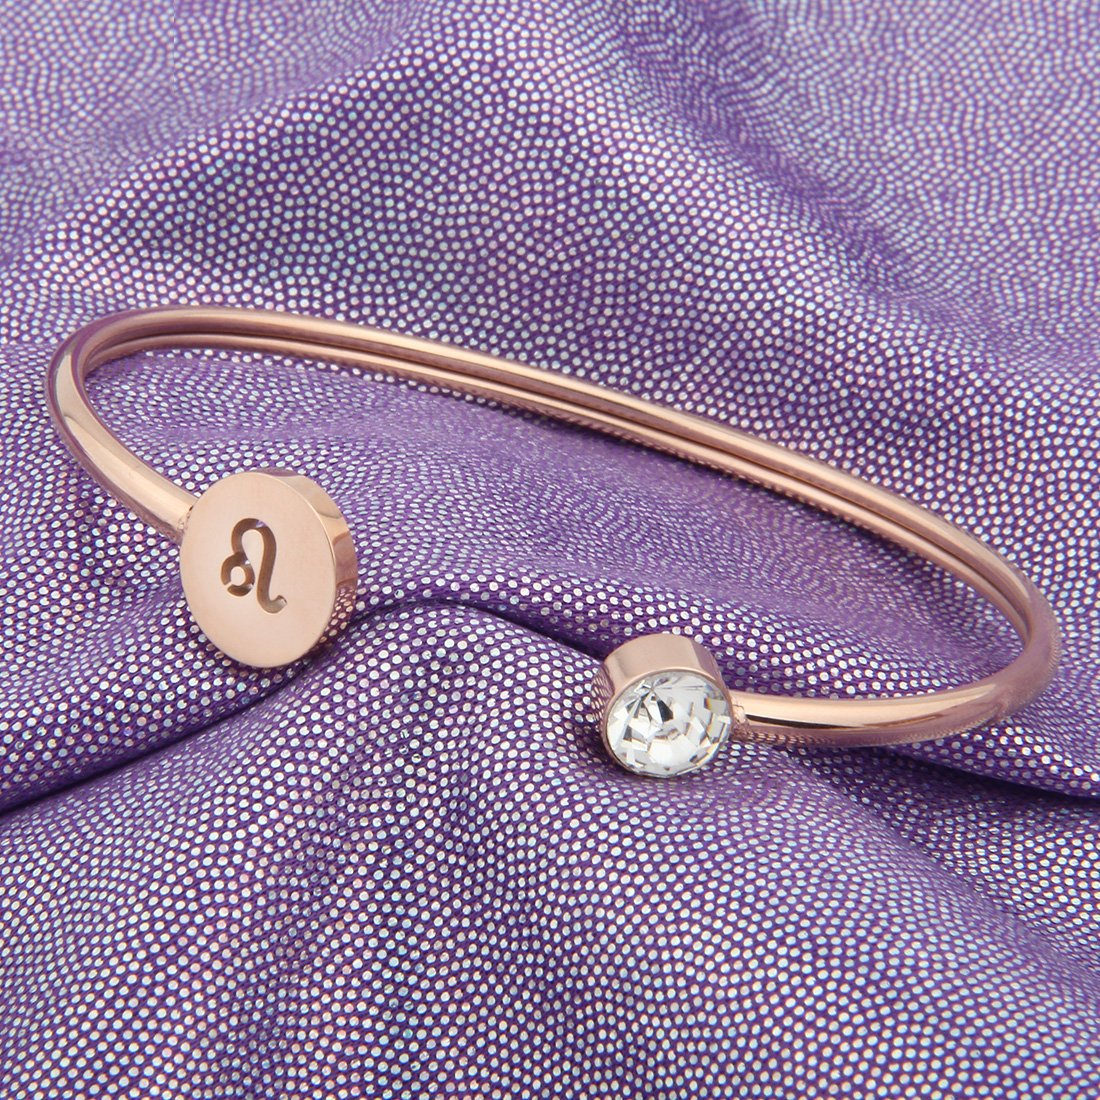 Zuo Bao Simple Rose Gold Zodiac Sign Cuff Bracelet with Birthstone Birthday Gift for Women Girls (Leo) by Zuo Bao (Image #3)